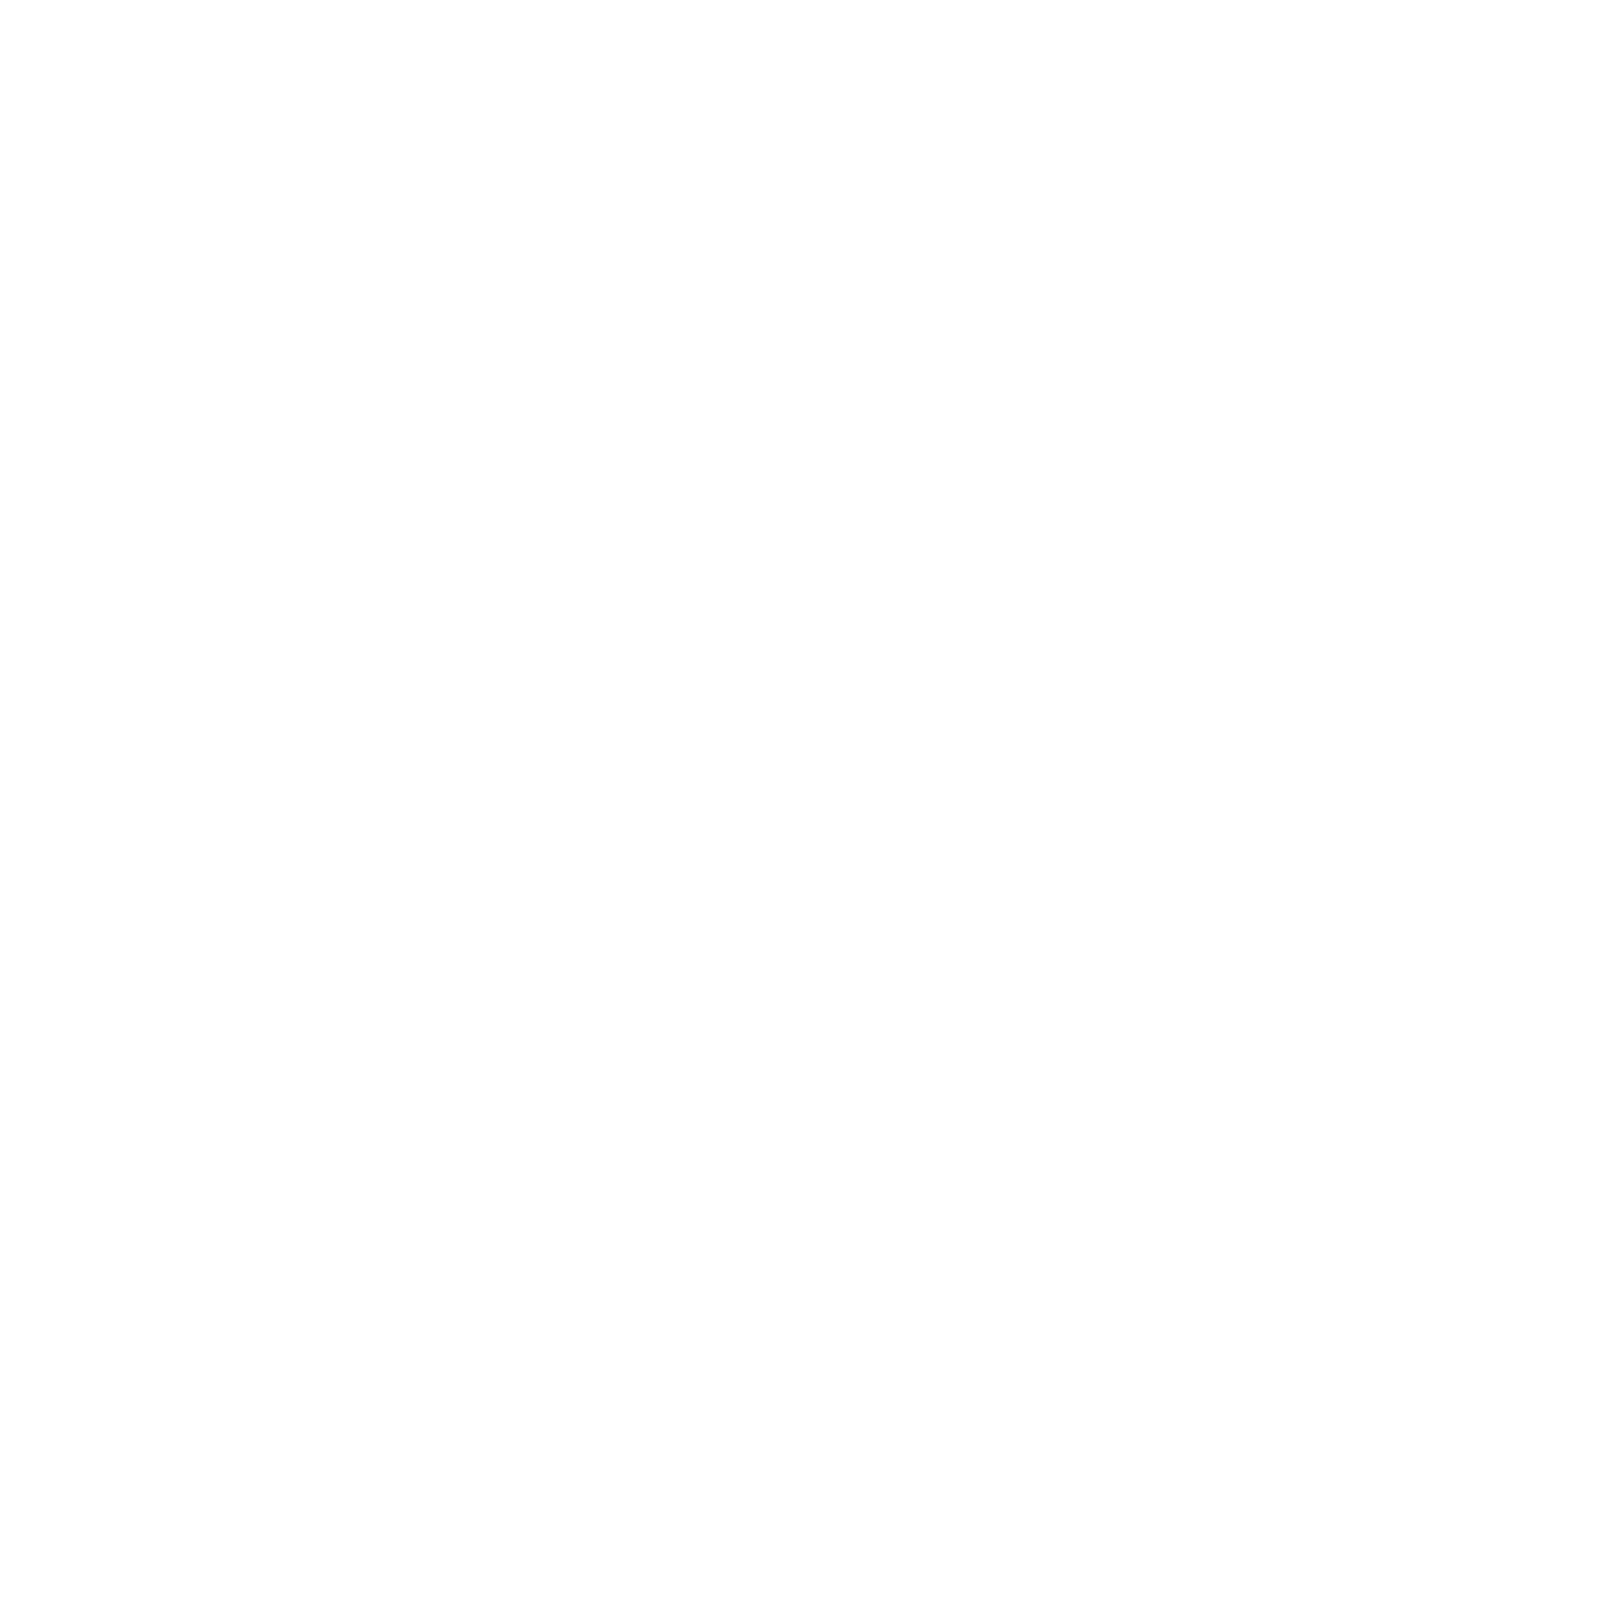 therefore-project-logo